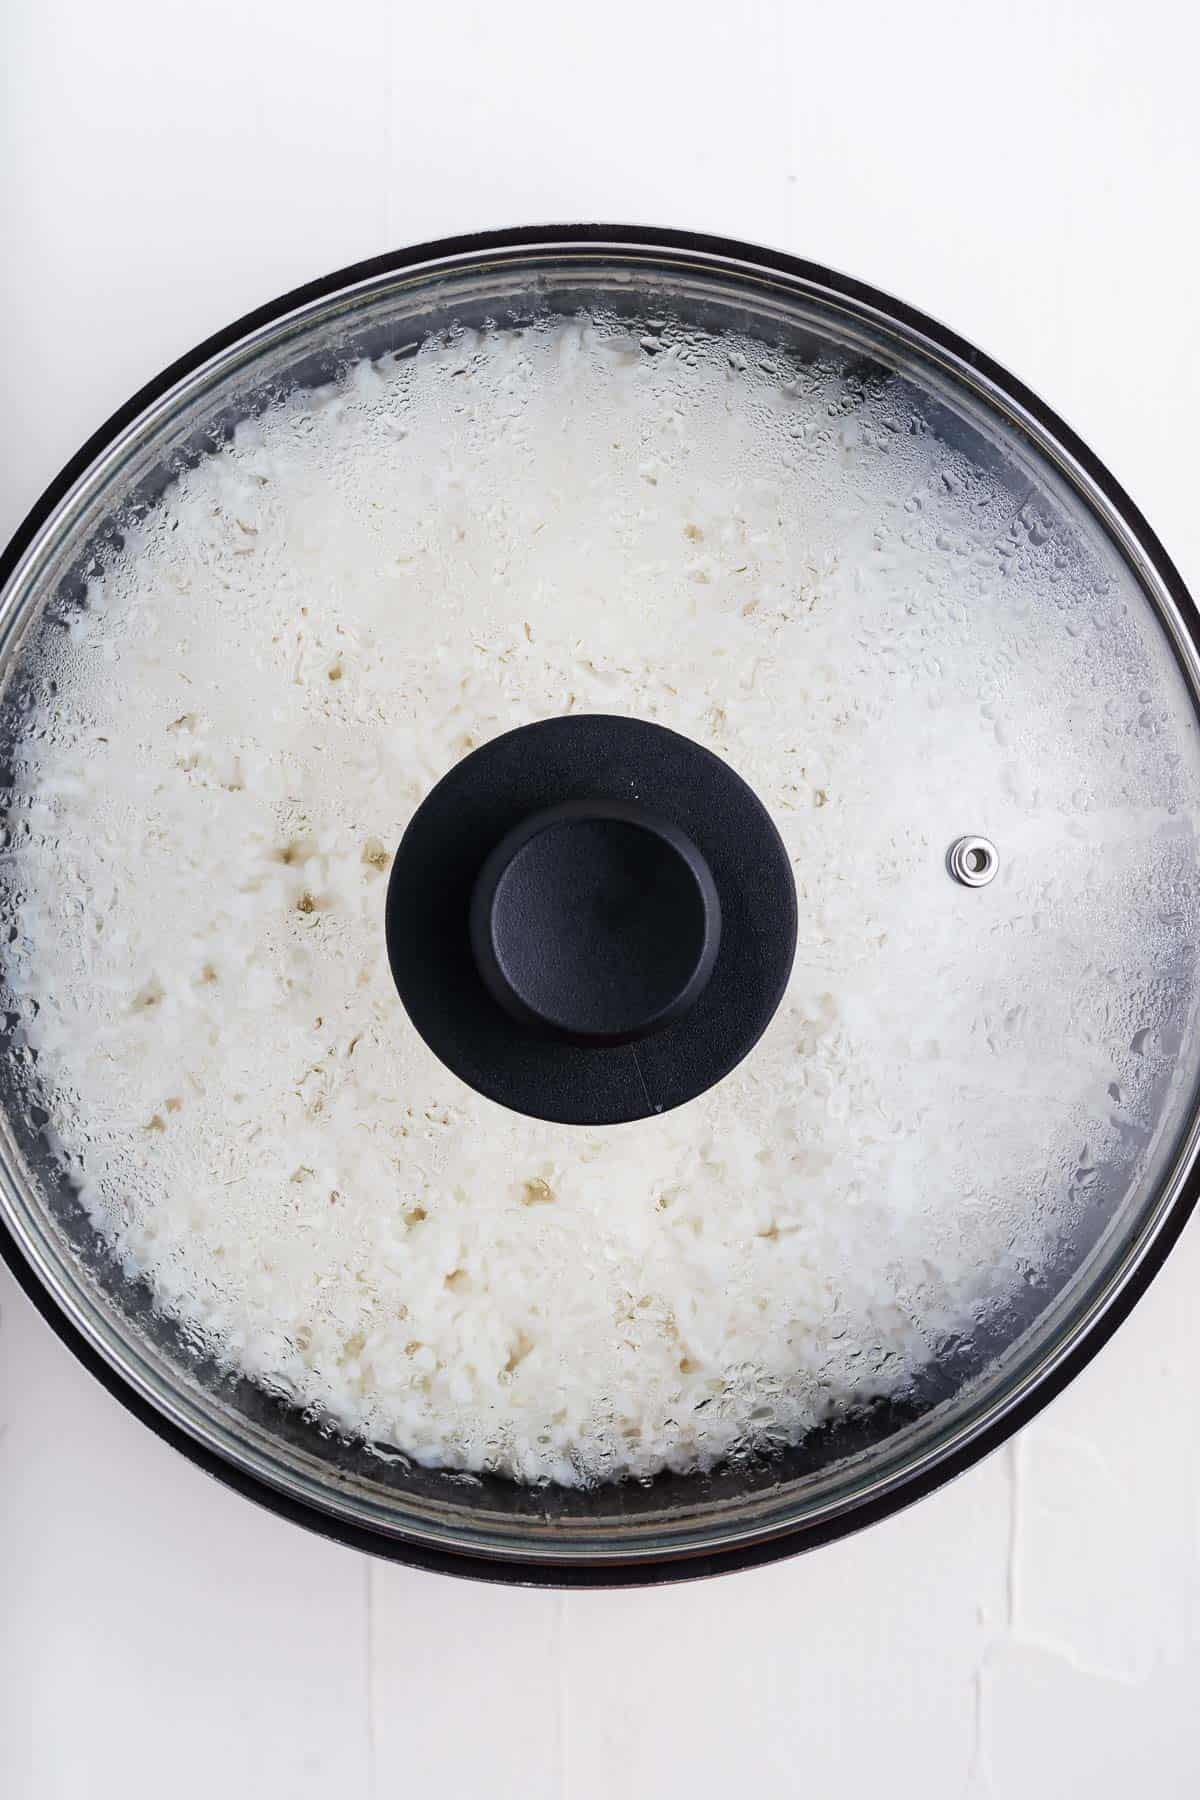 Cooked Rice in a Pot With a Lid on